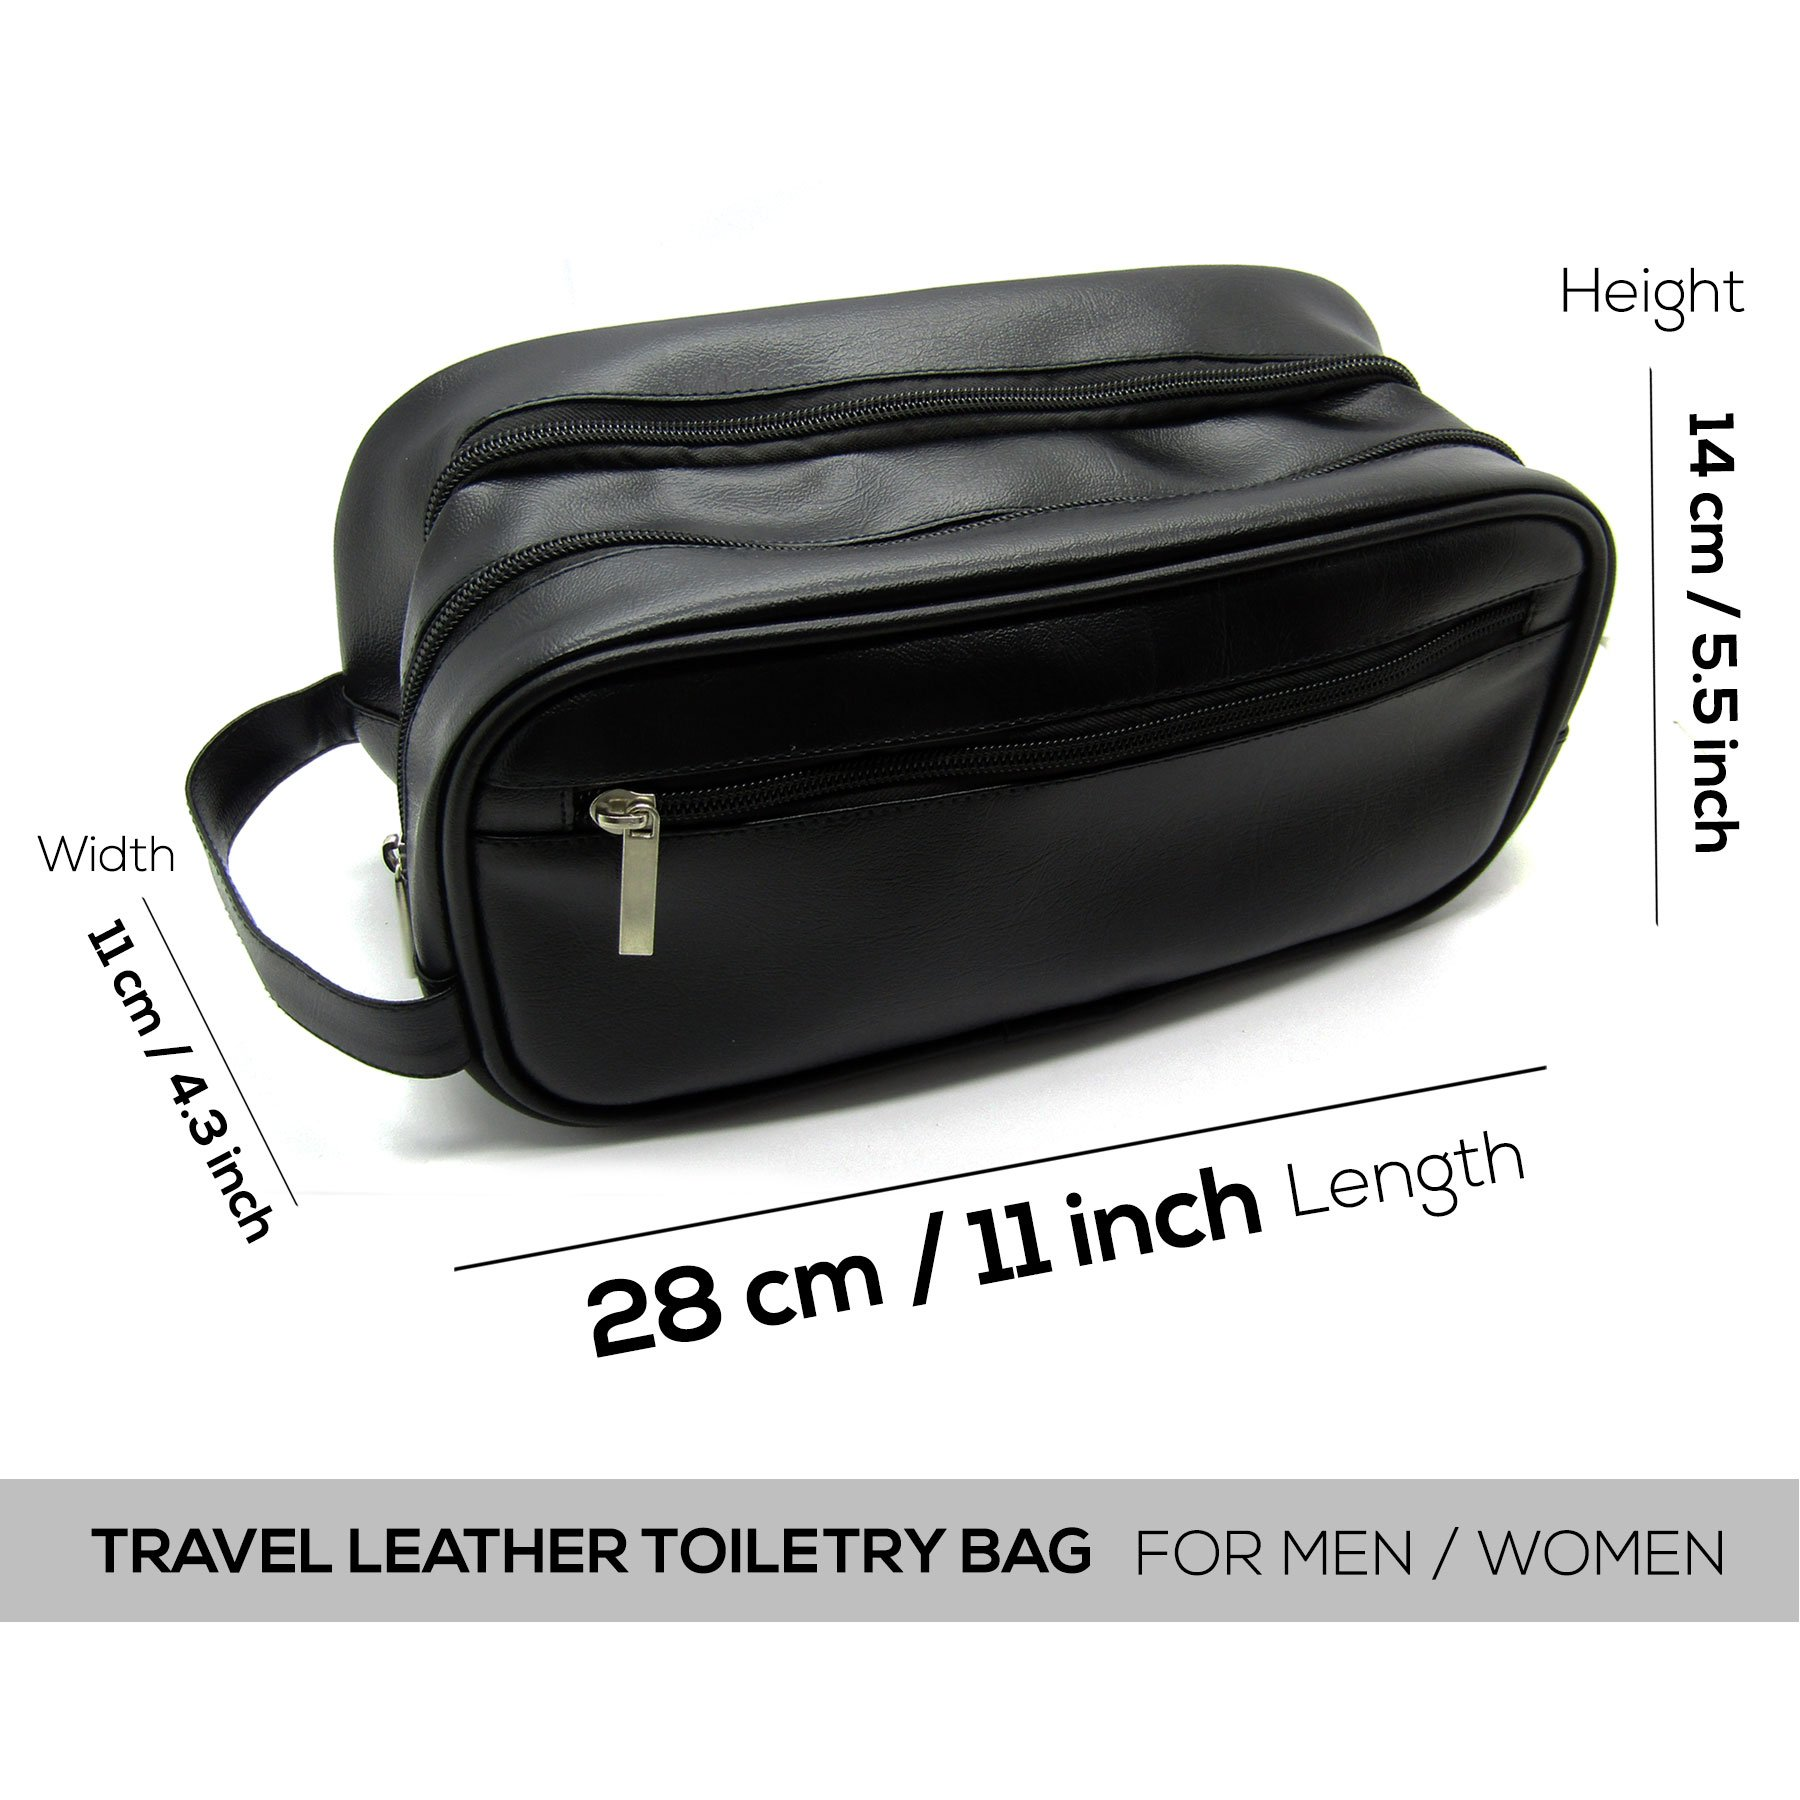 Mister Bag Leather Travel Toiletry Bag for Men or Women Waterproof. Travel Size Toiletries Bag Toilet Organizer Supply Two Compartments Perfect For Men's Travel Toiletry Bag Shaving Grooming Dopp Kit by Mister Bag (Image #6)